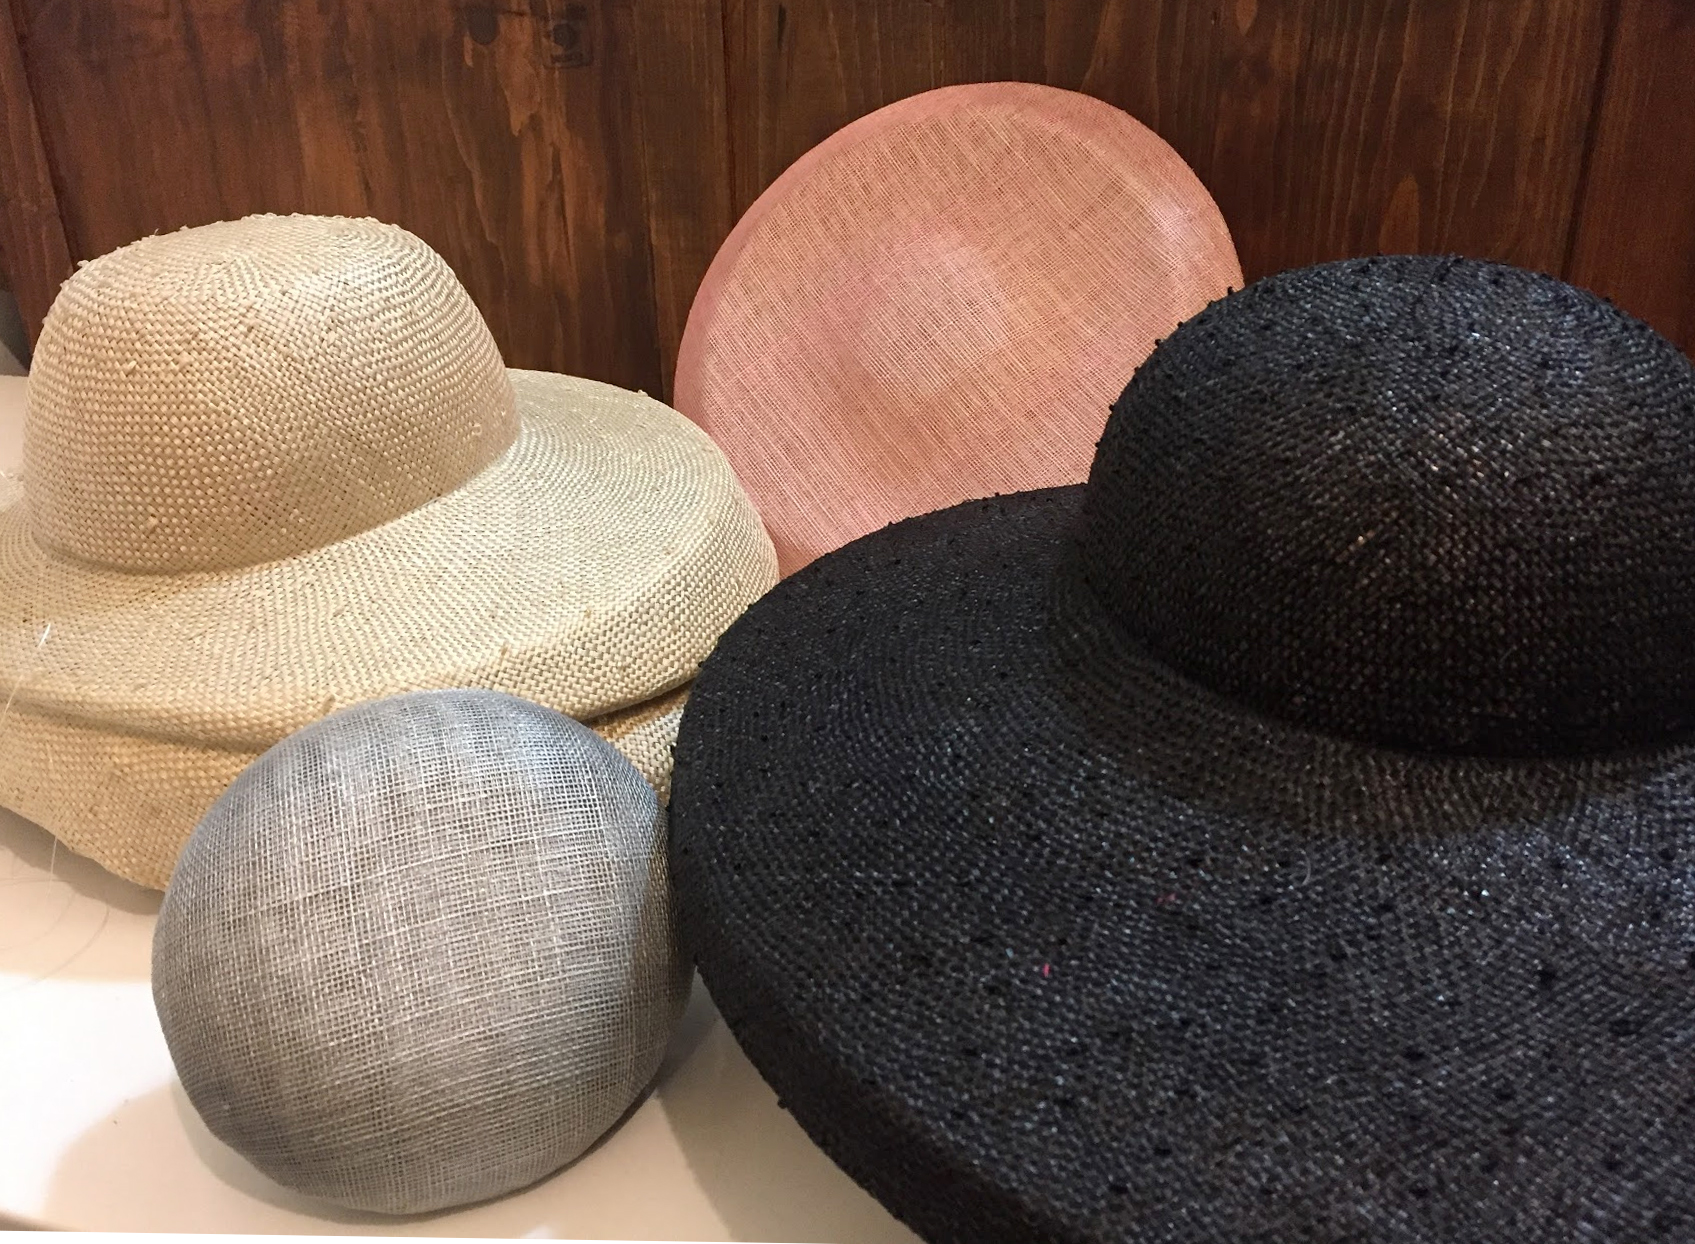 Blocked straw hats - unisex • assorted straws and finishes